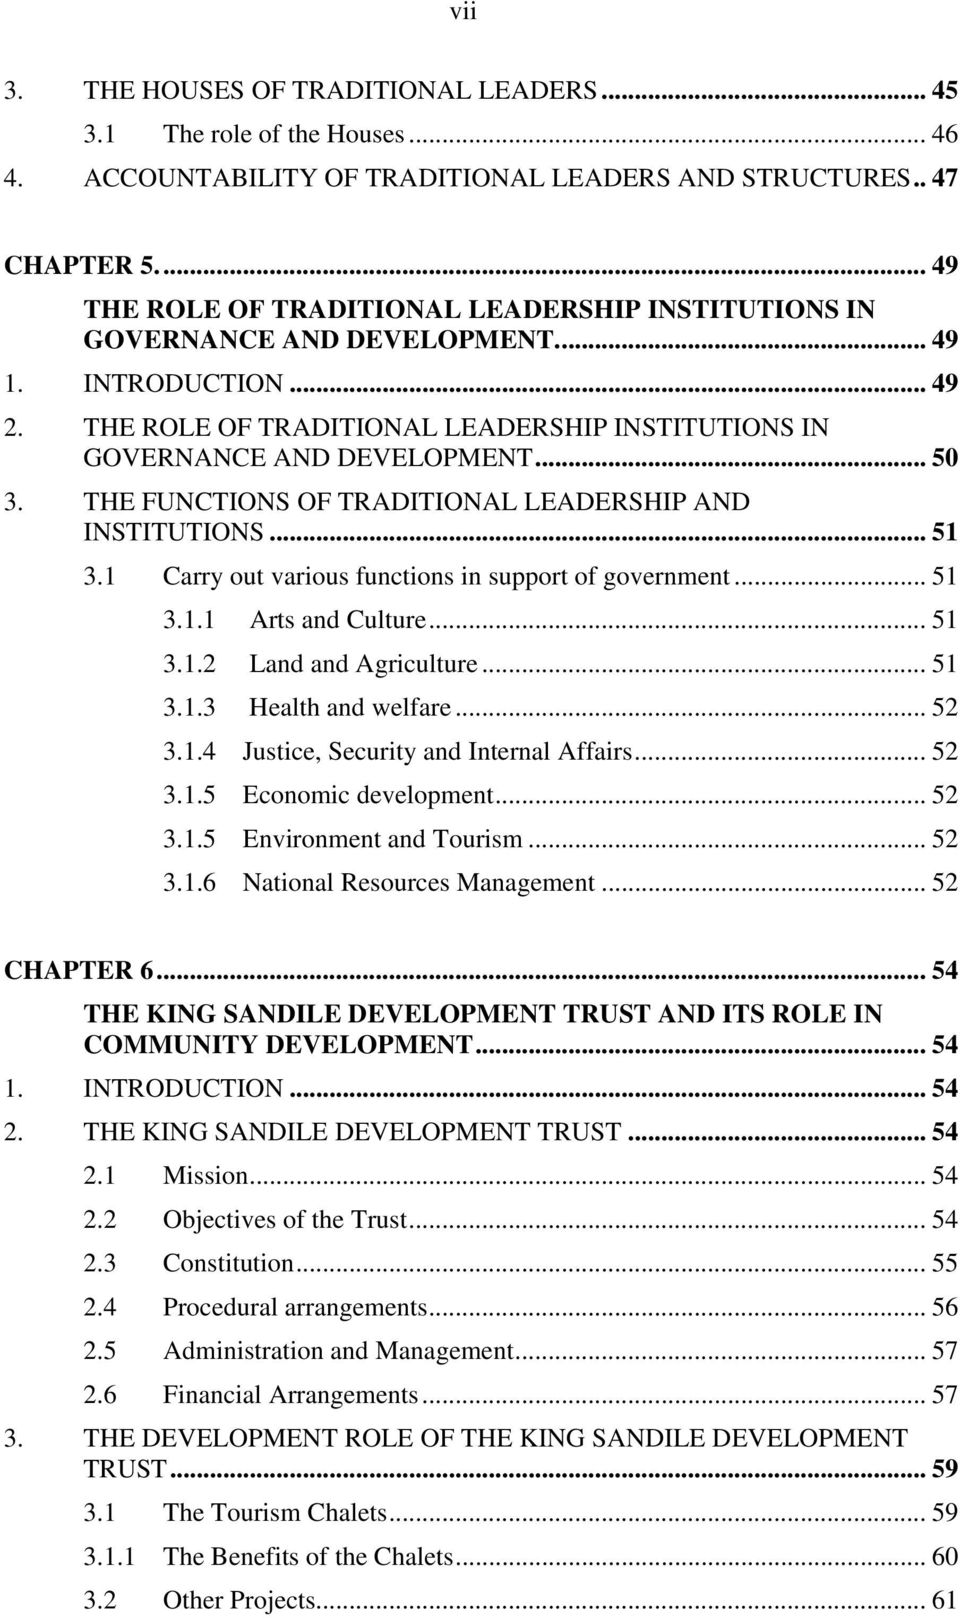 THE FUNCTIONS OF TRADITIONAL LEADERSHIP AND INSTITUTIONS... 51 3.1 Carry out various functions in support of government... 51 3.1.1 Arts and Culture... 51 3.1.2 Land and Agriculture... 51 3.1.3 Health and welfare.